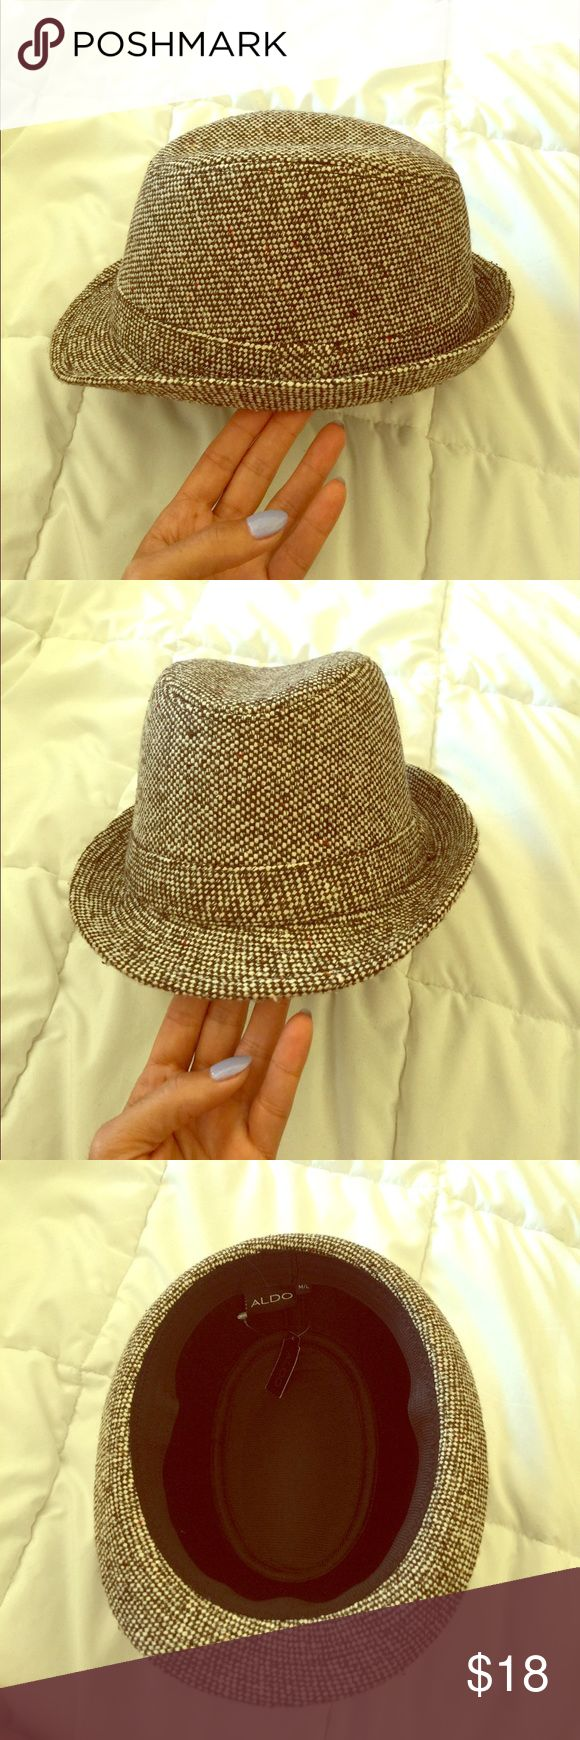 Hat A brown  and cream hat unused Aldo Accessories Hats